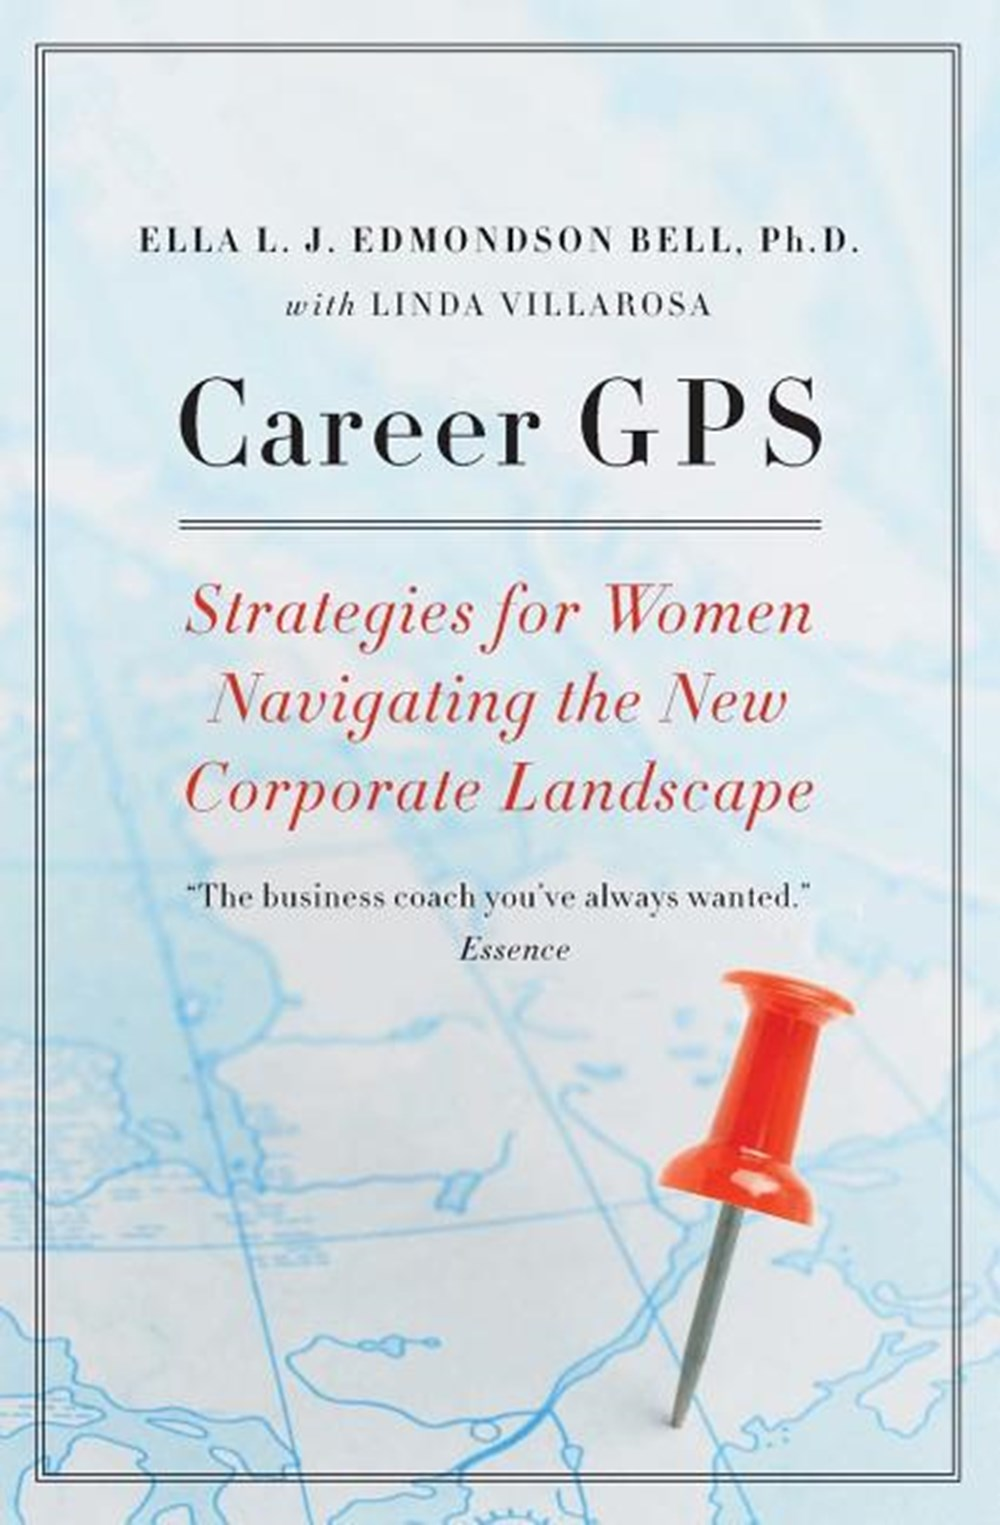 Career GPS Strategies for Women Navigating the New Corporate Landscape